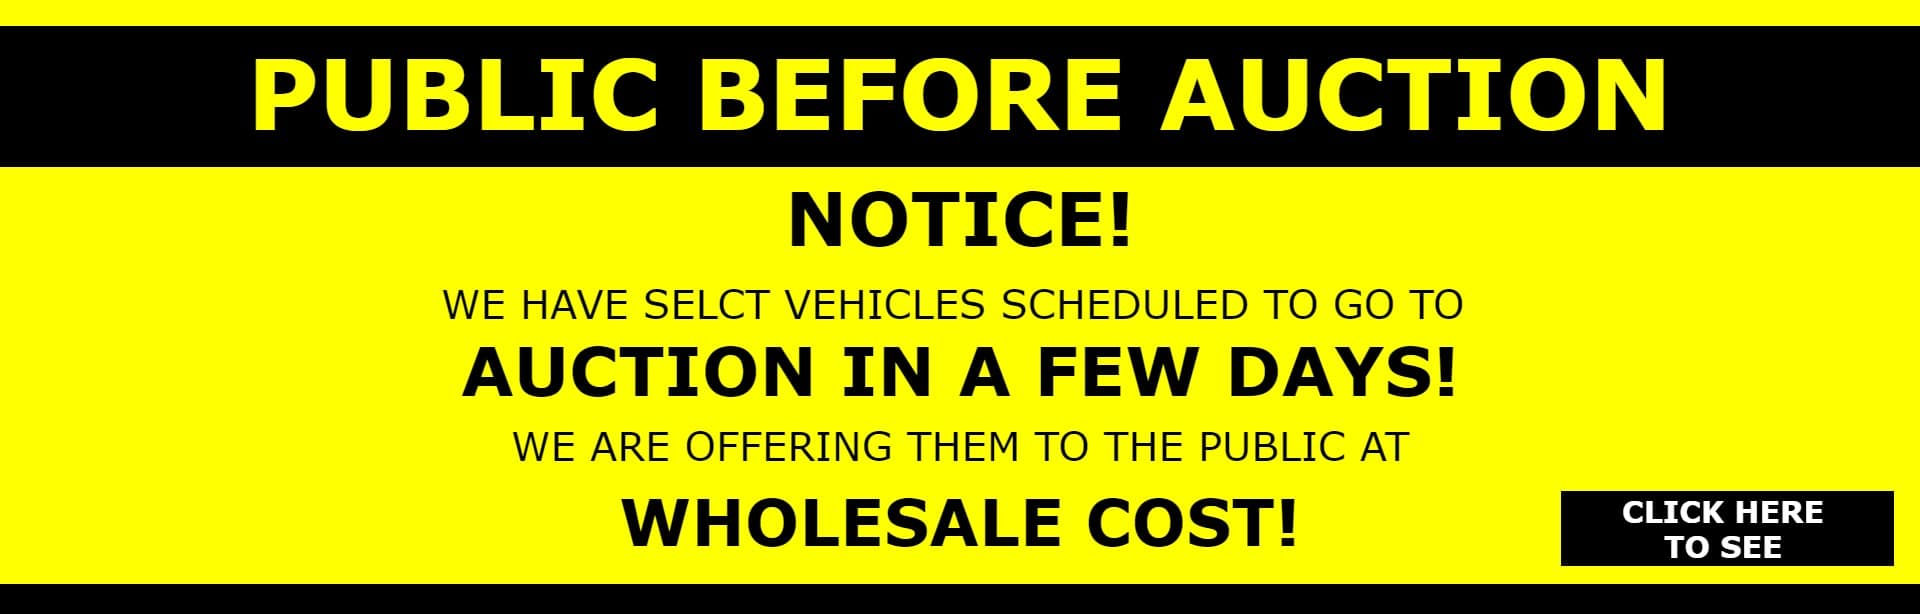 Public Before Auction Banner 1920×614